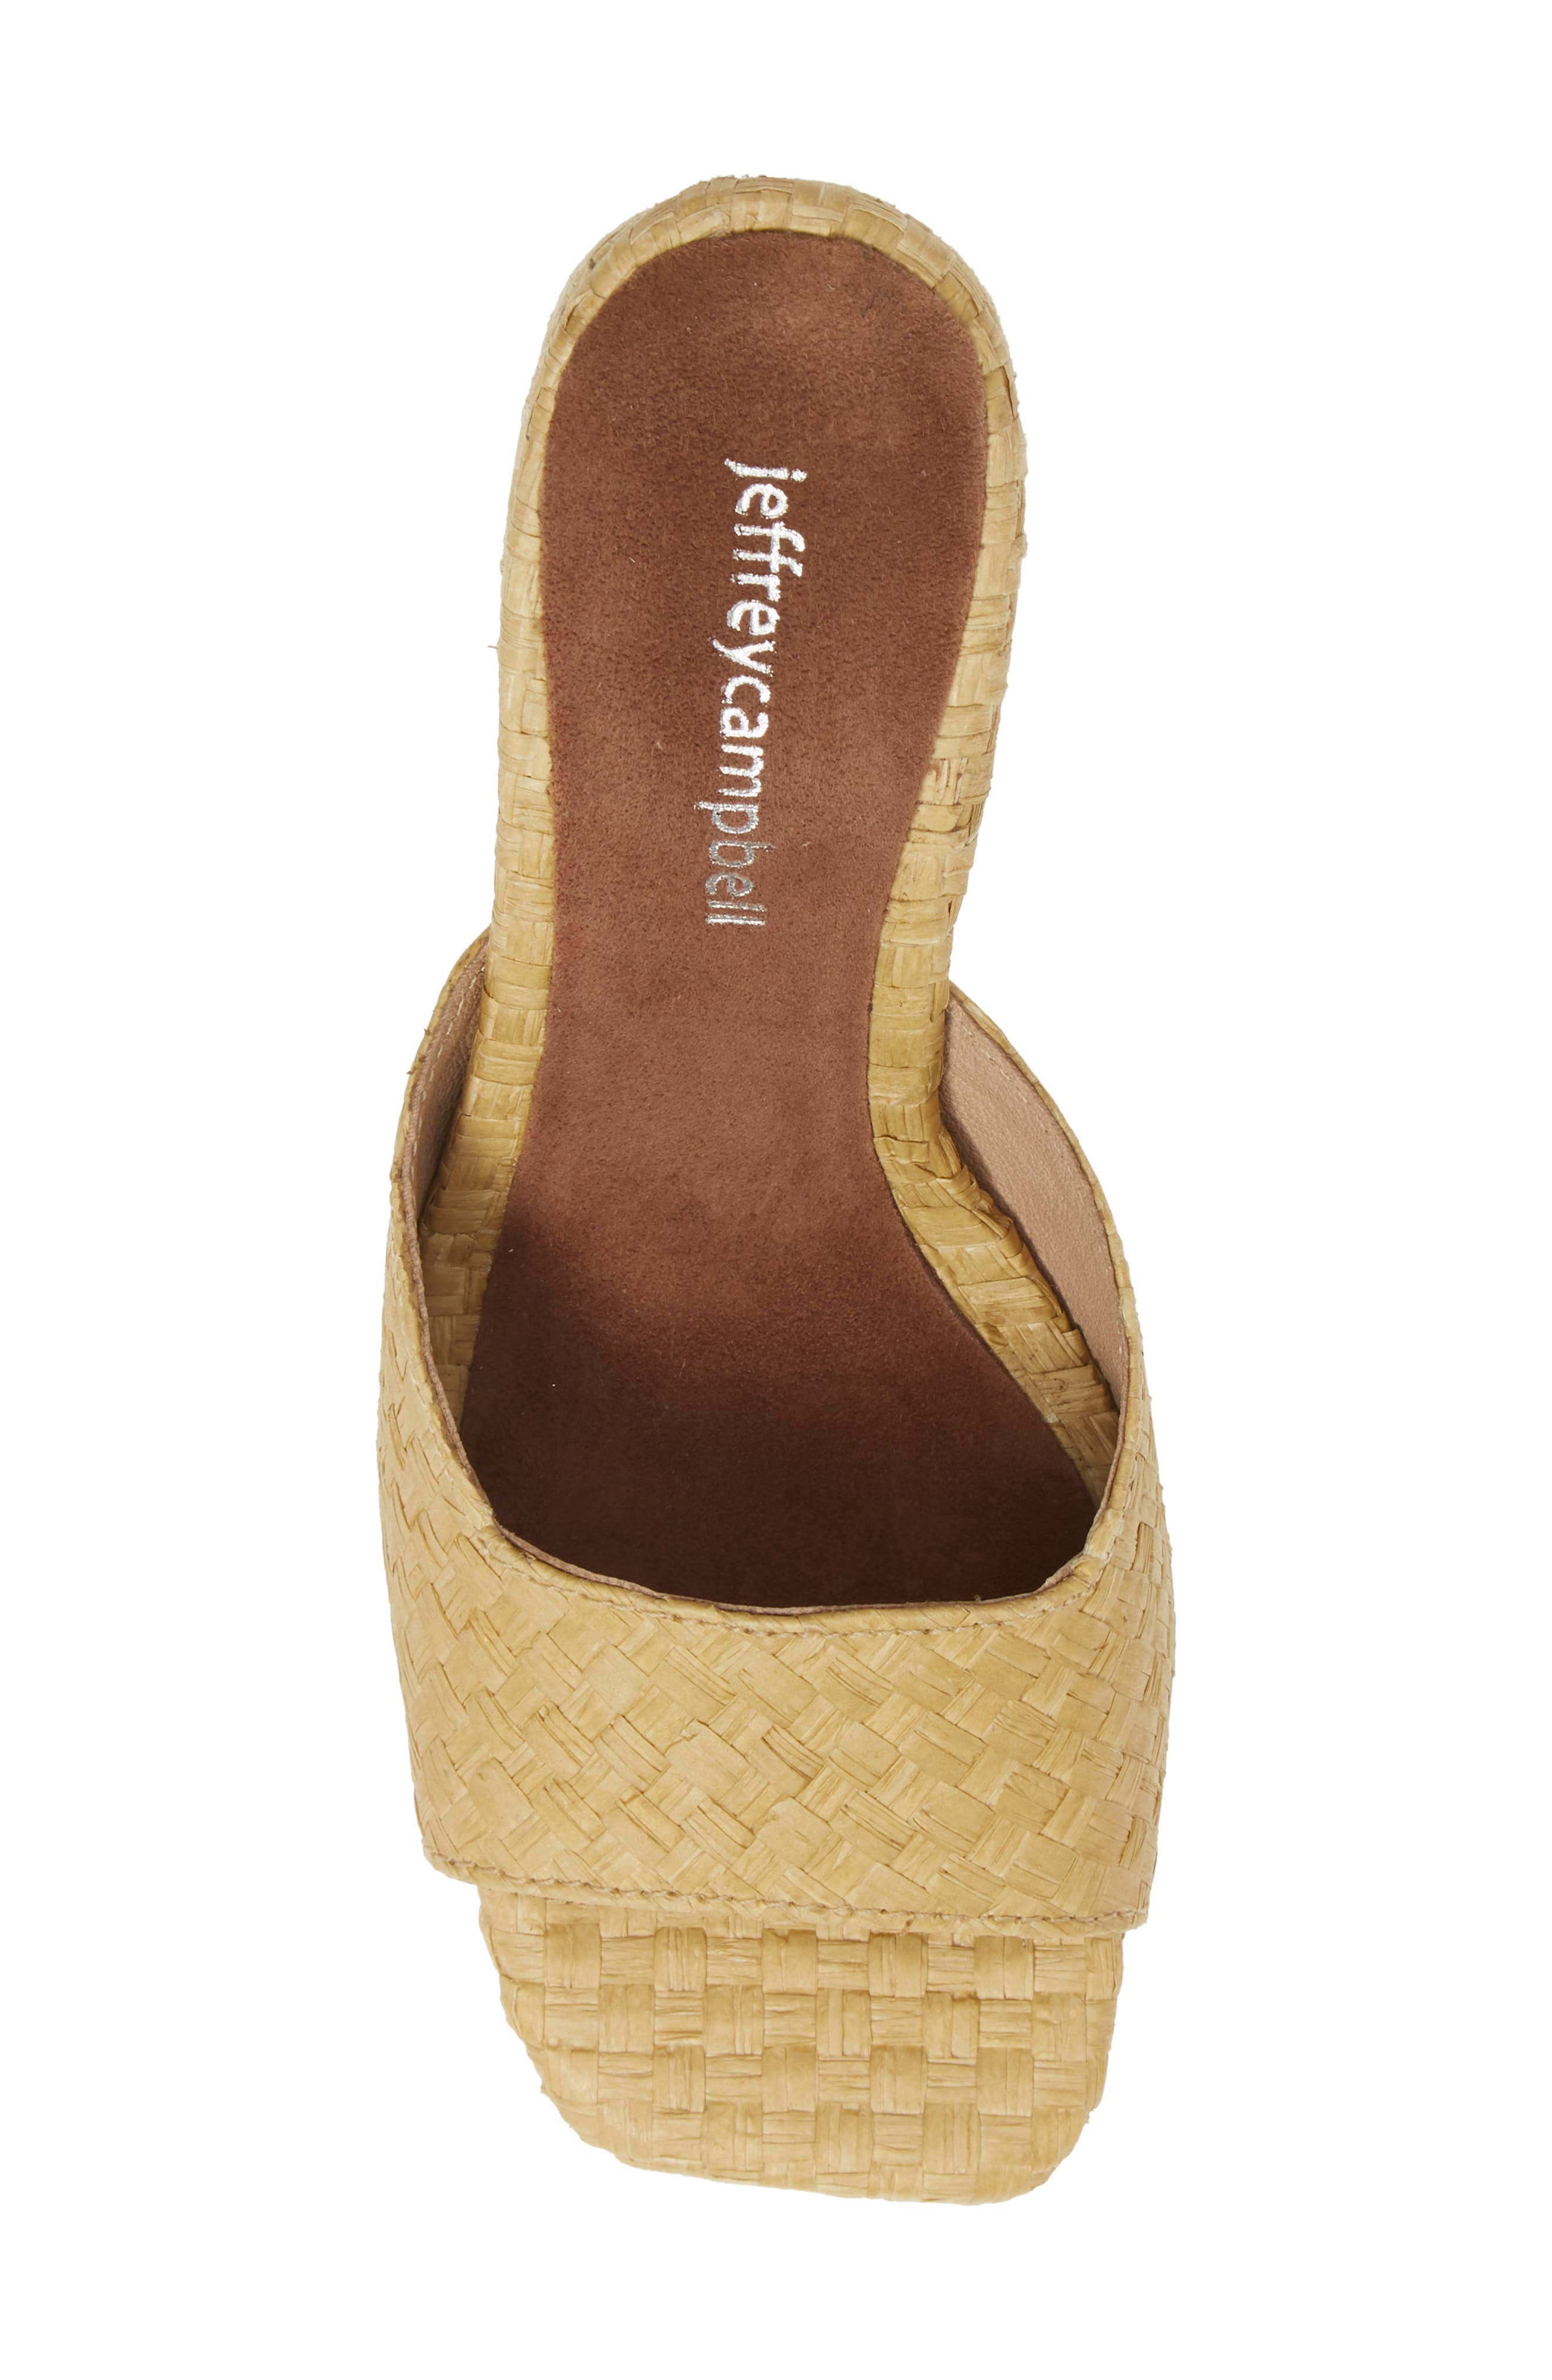 JEFFREY CAMPBELL, Mélange Raffia Slide Sandal, Alternate thumbnail 5, color, 200